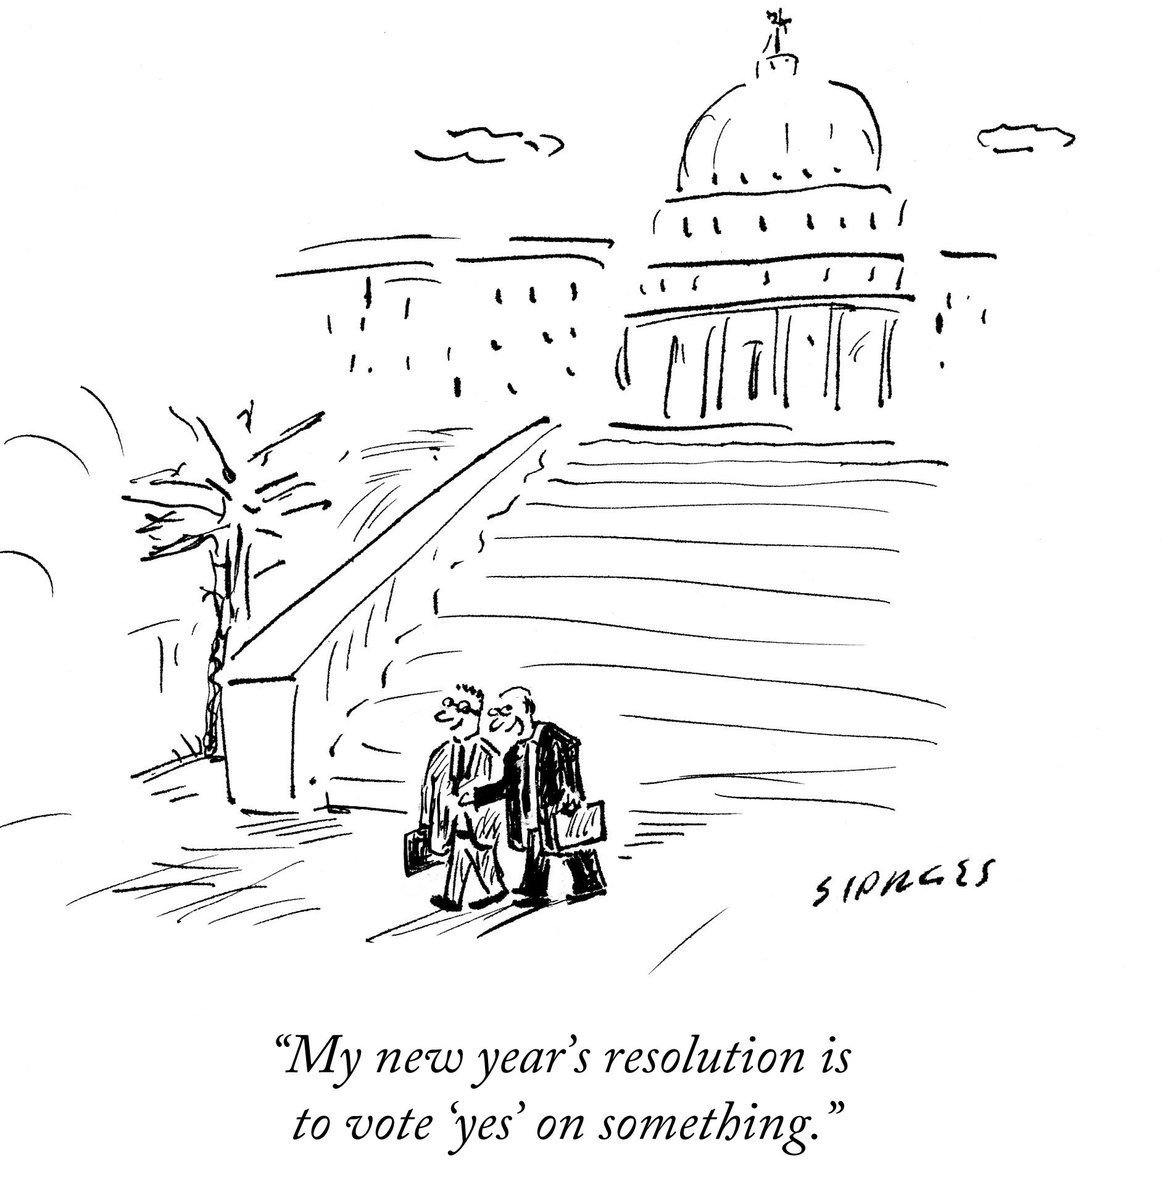 "The New Yorker on Twitter: ""A cartoon by David Sipress. Discover more  cartoons with our randomizer tool: https://t.co/HopNK4vpmp  https://t.co/P9ENn5lnzE"""